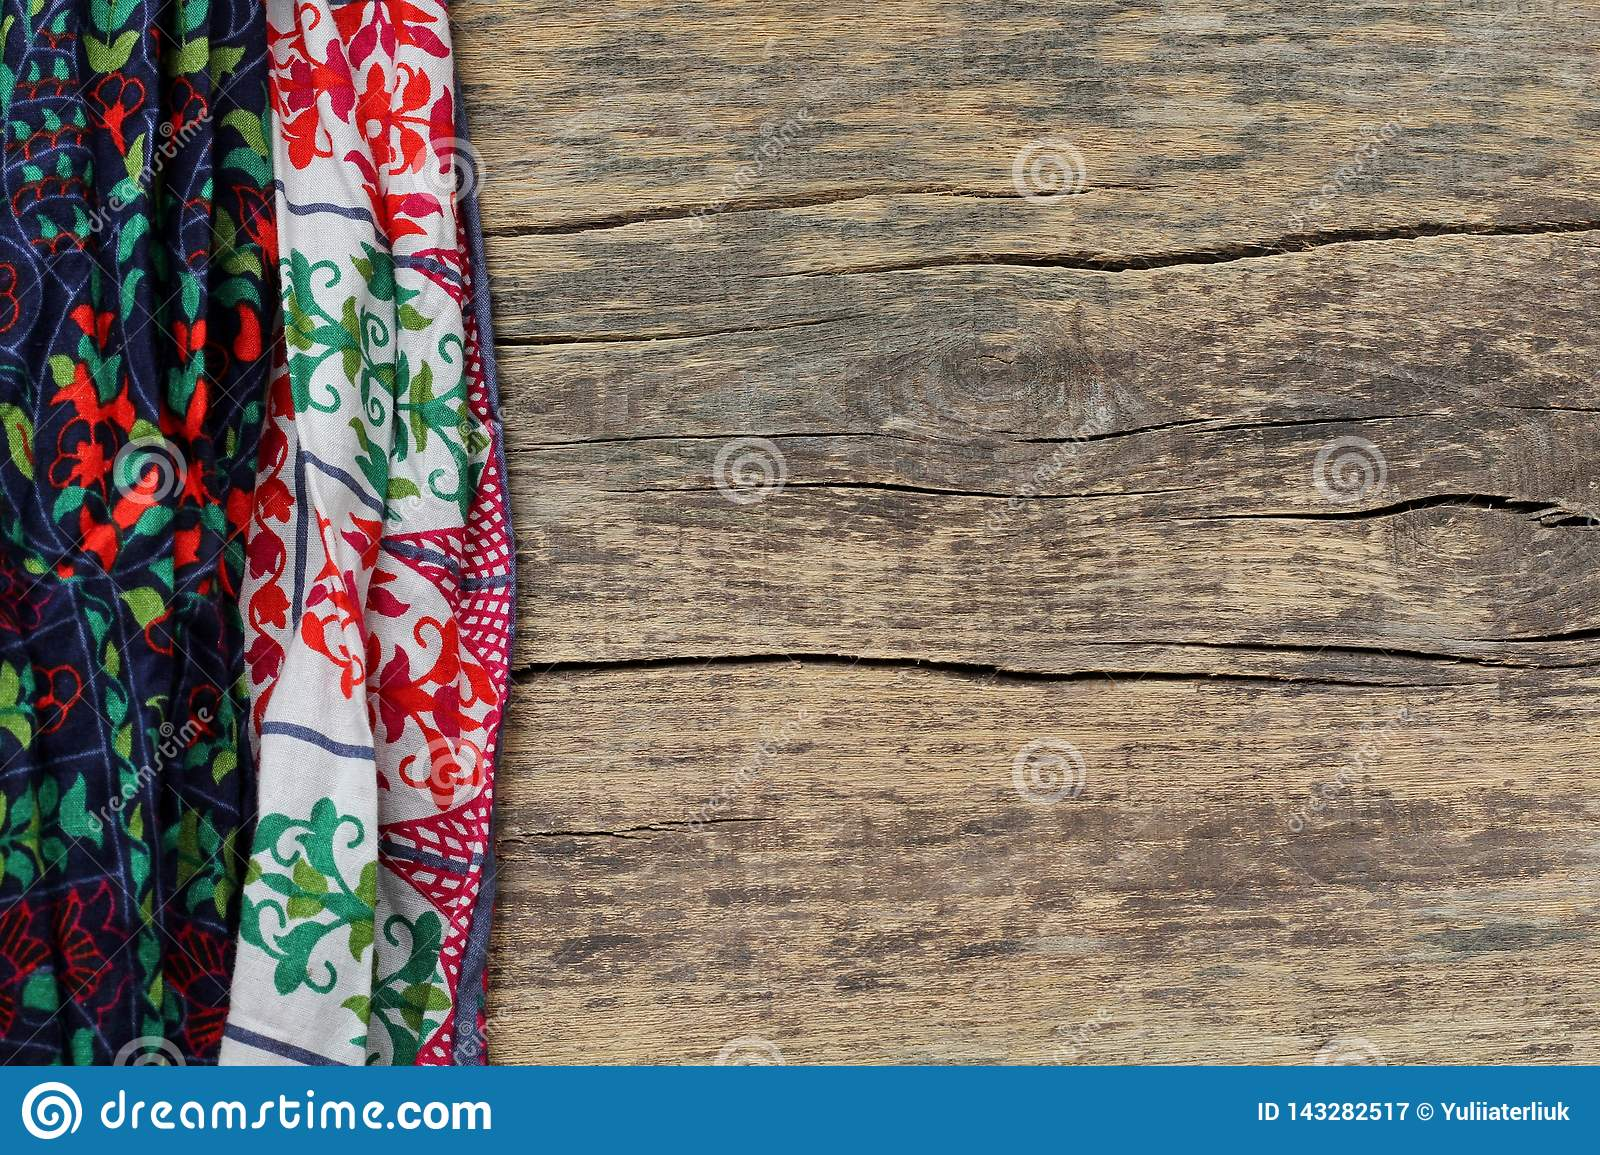 Indian ethnic colored fabric on a wooden background